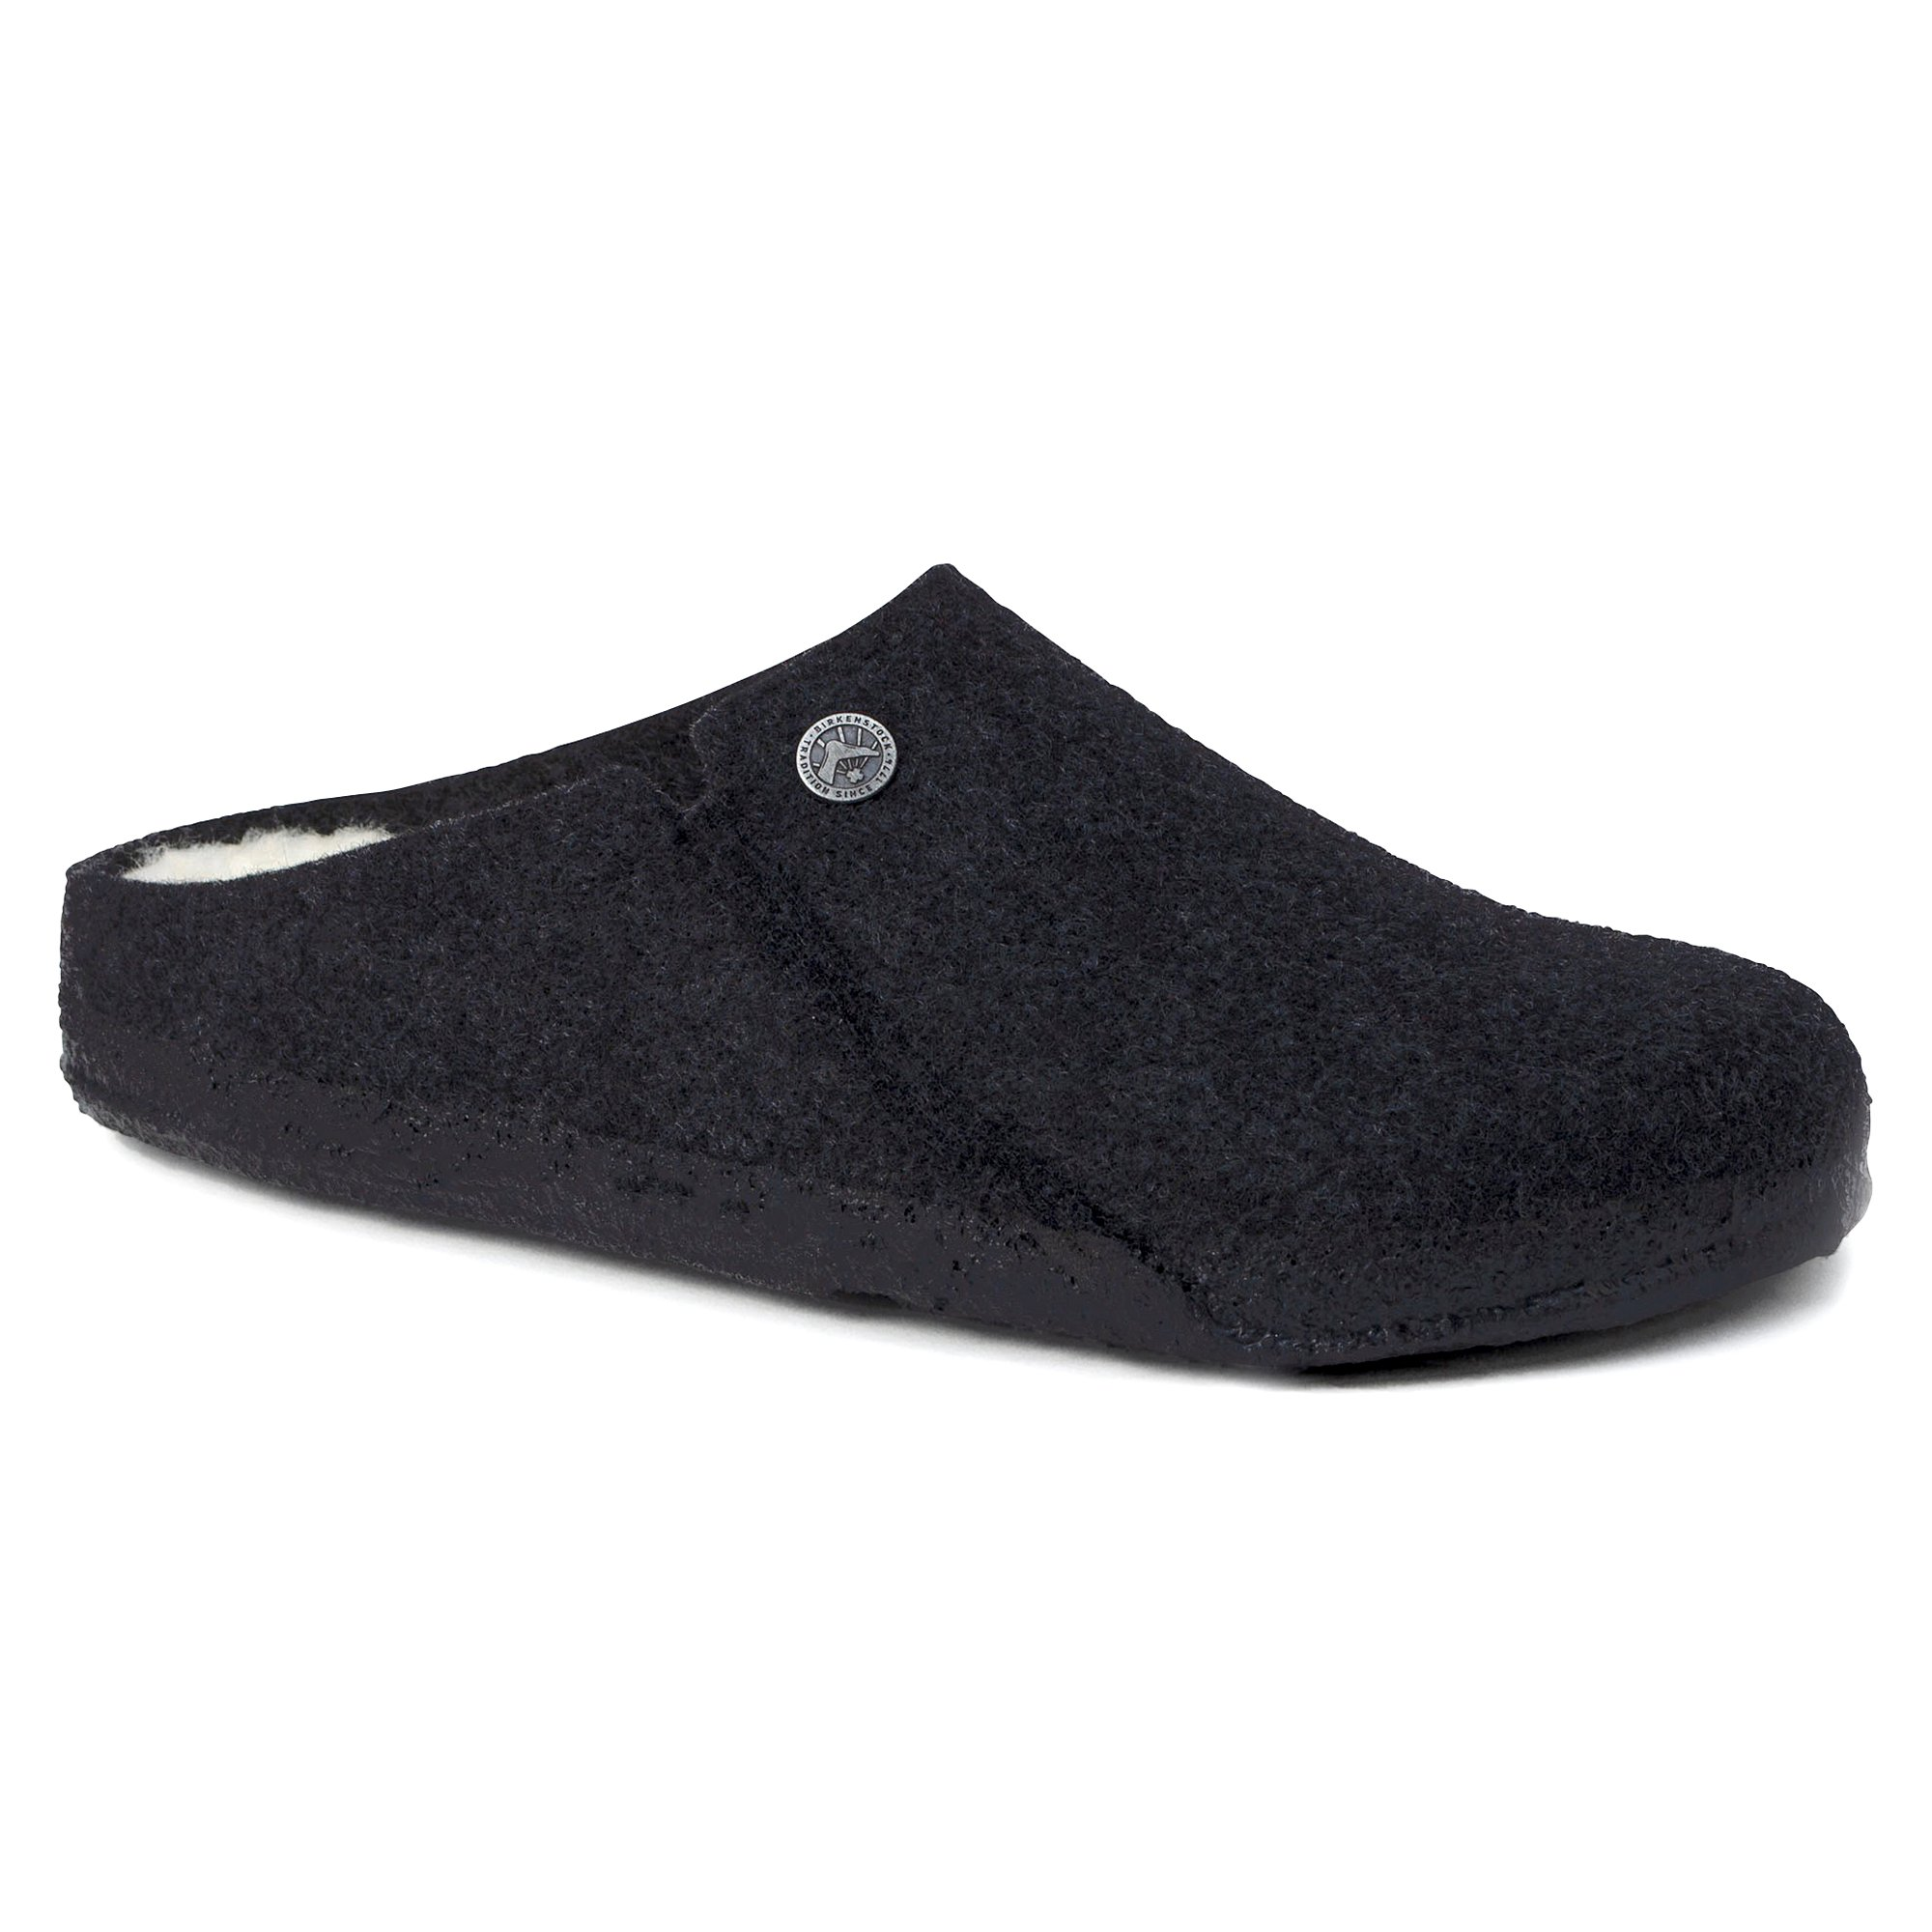 Zermatt Wool Felt Slipper Anthracite